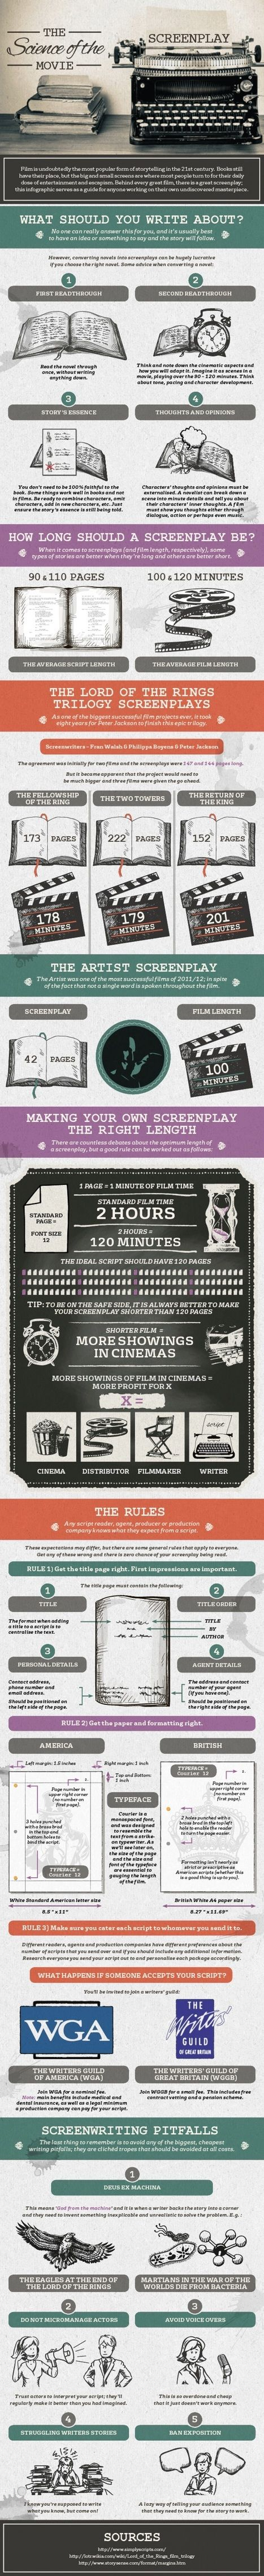 Screenwriting Essentials in Infographic Form   Transmedia: Storytelling for the Digital Age   Scoop.it